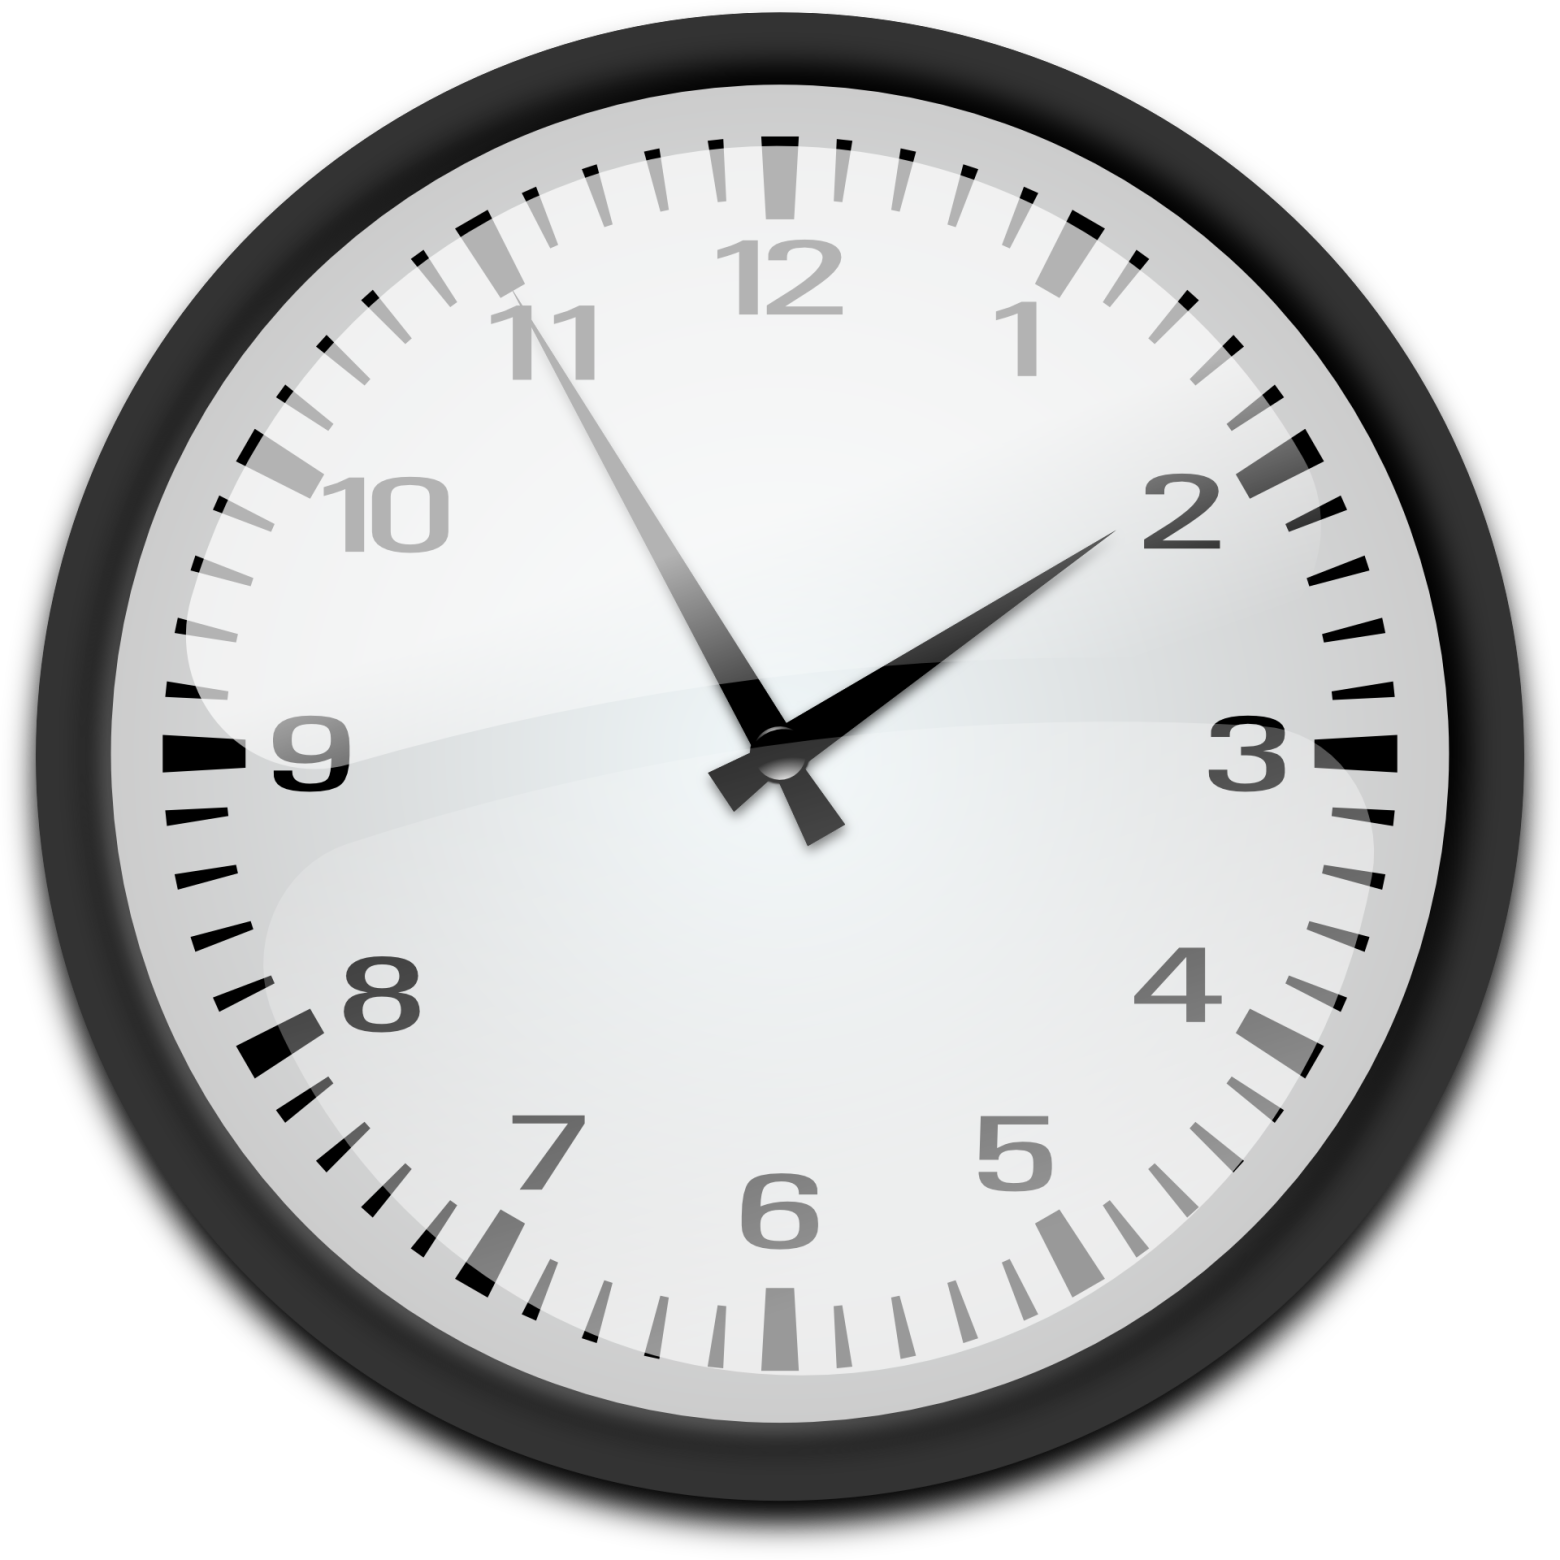 Image clipart gratuit png black and white download Clipart Gratuit Horloge image information png black and white download